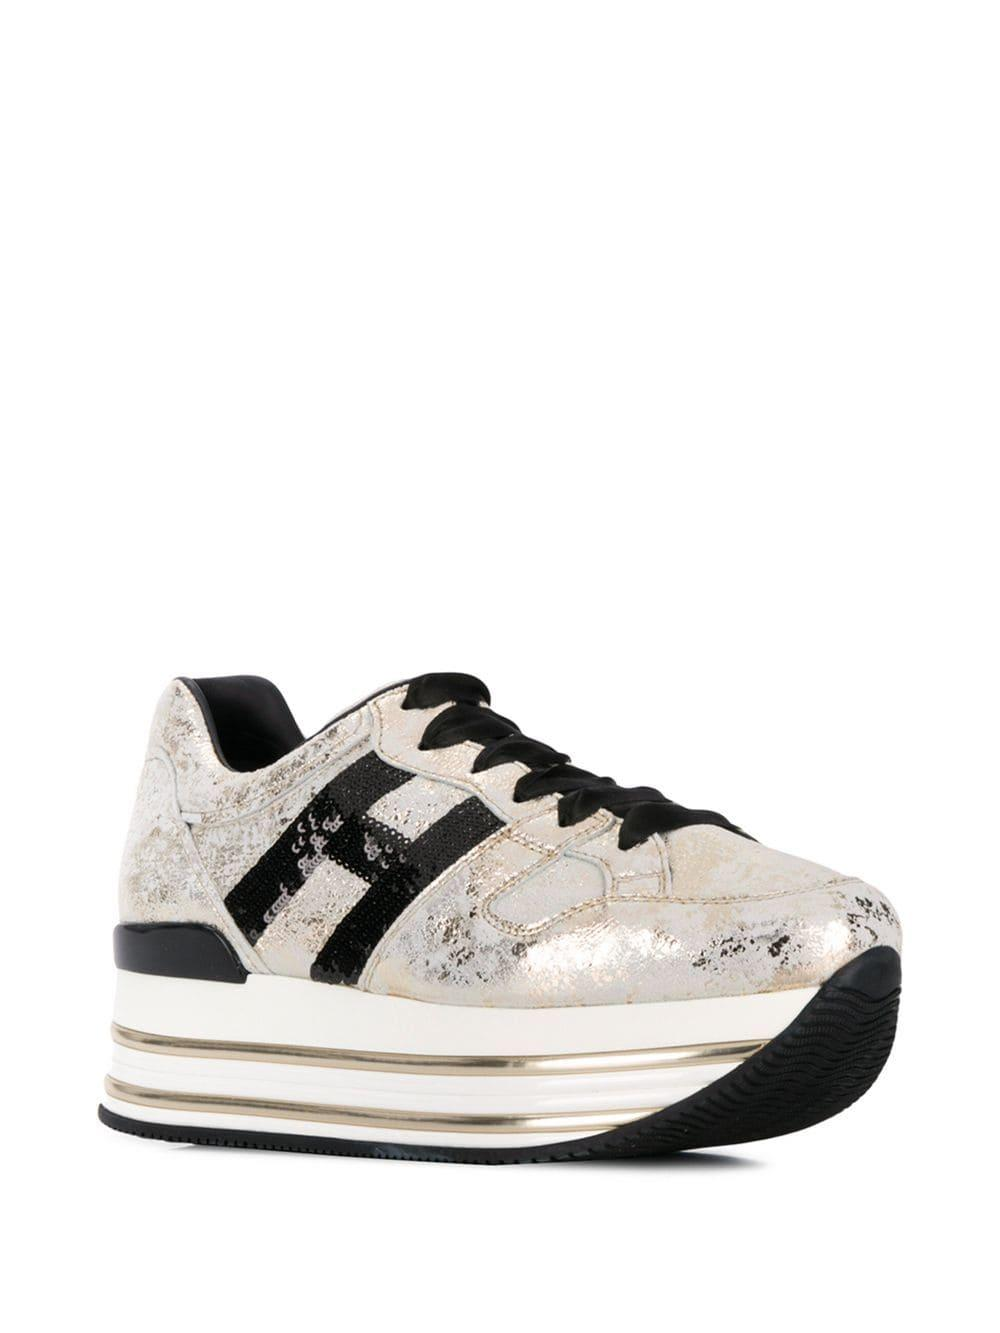 timeless design 3ce3d 8dfed Lyst - Hogan Maxi H222 Sneakers in Metallic